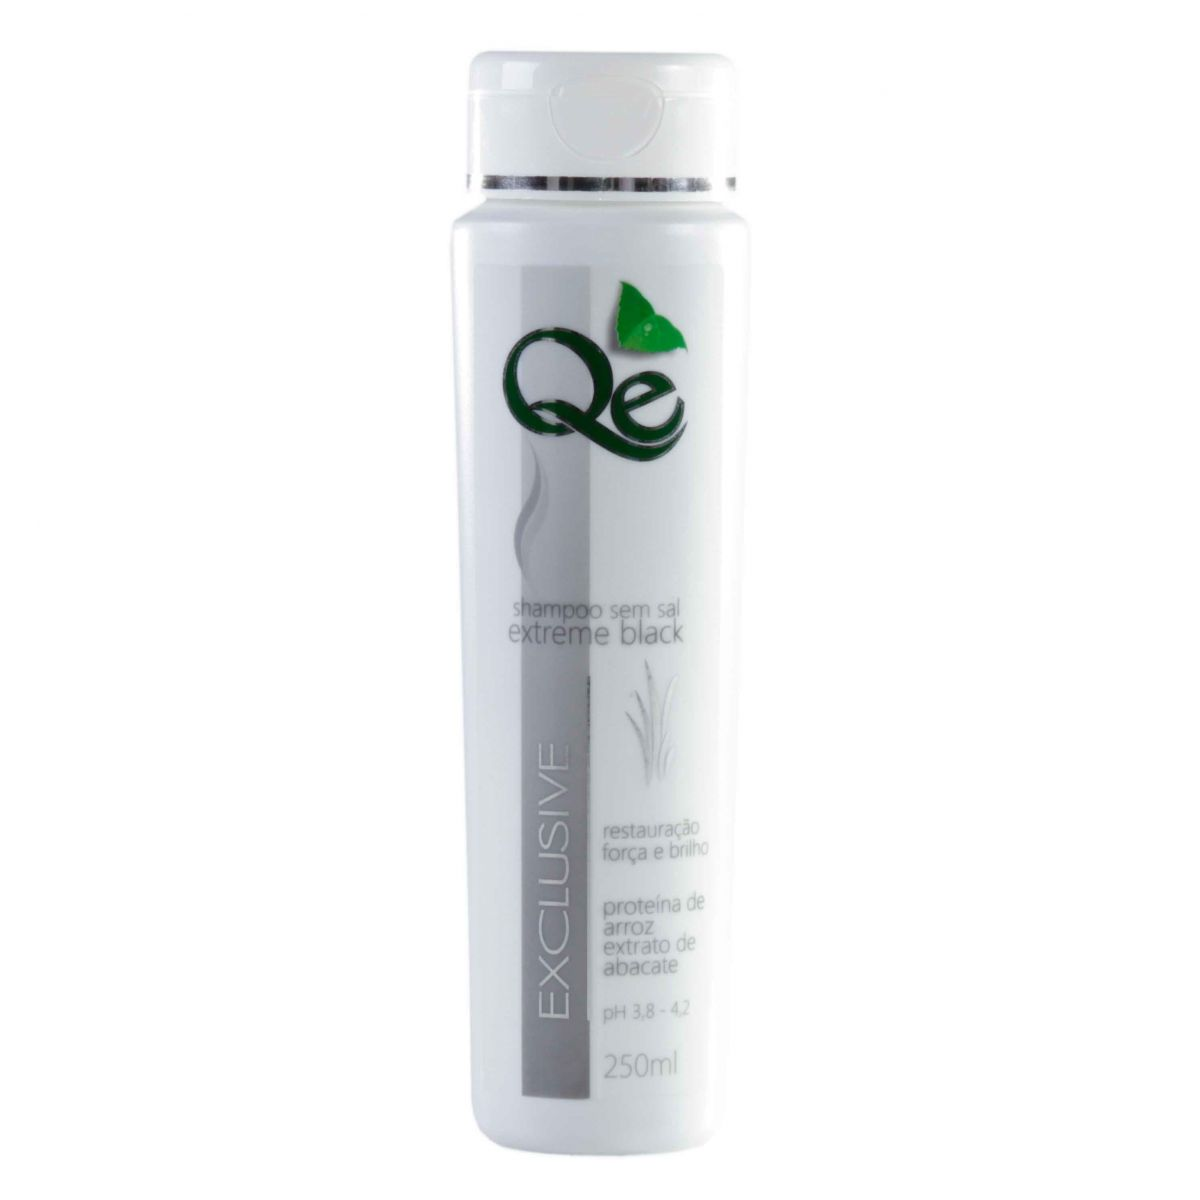 SHAMPOO EXTREME BLACK 250ML  - LOJA QUINTA ESSENCIA